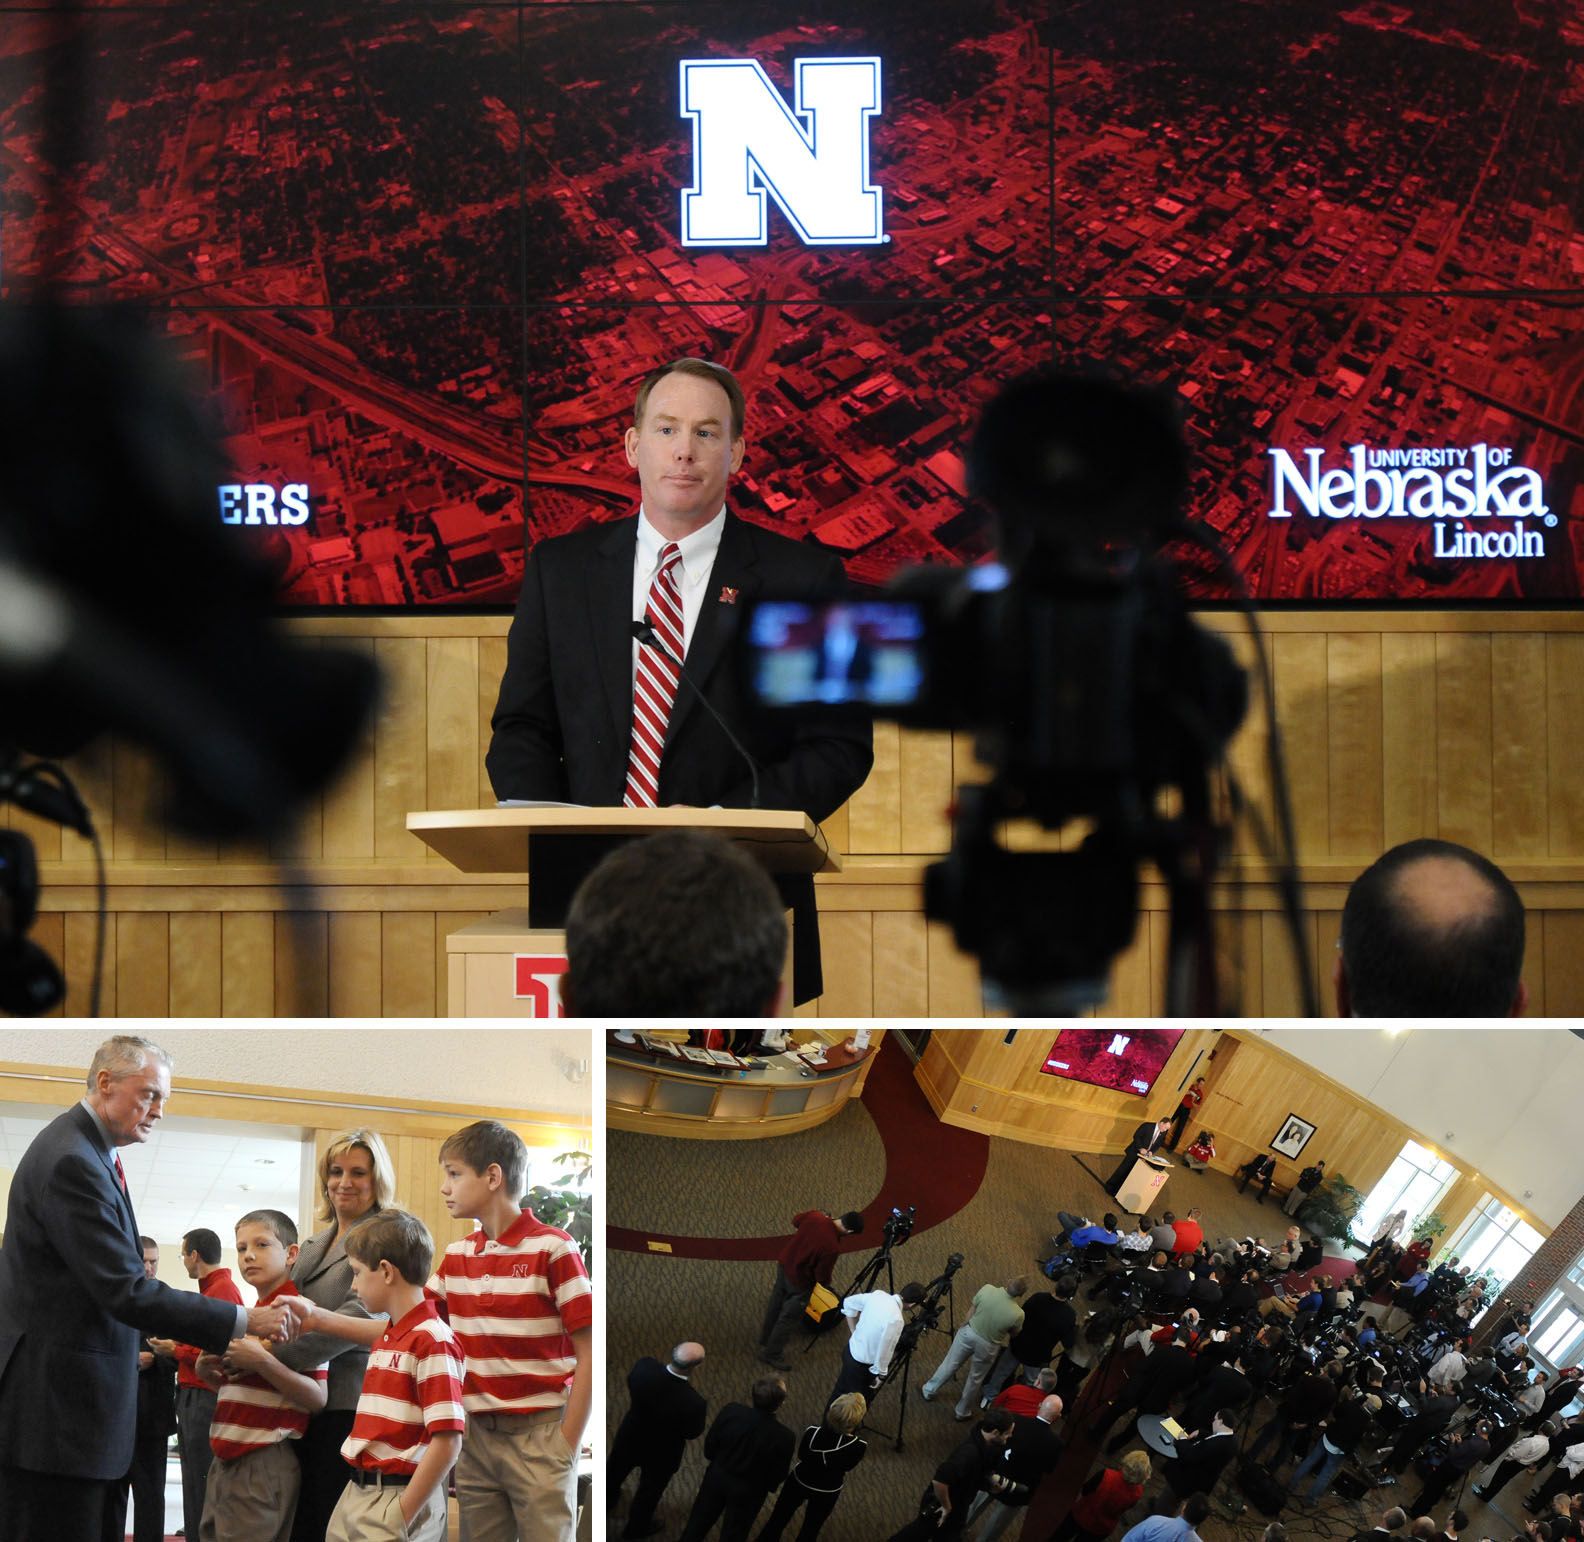 Shawn Eichorst was introduced to local media as UNL's next AD on Oct. 9. His family (pictured at bottom left with current AD Tom Osborne) attended the announcement.